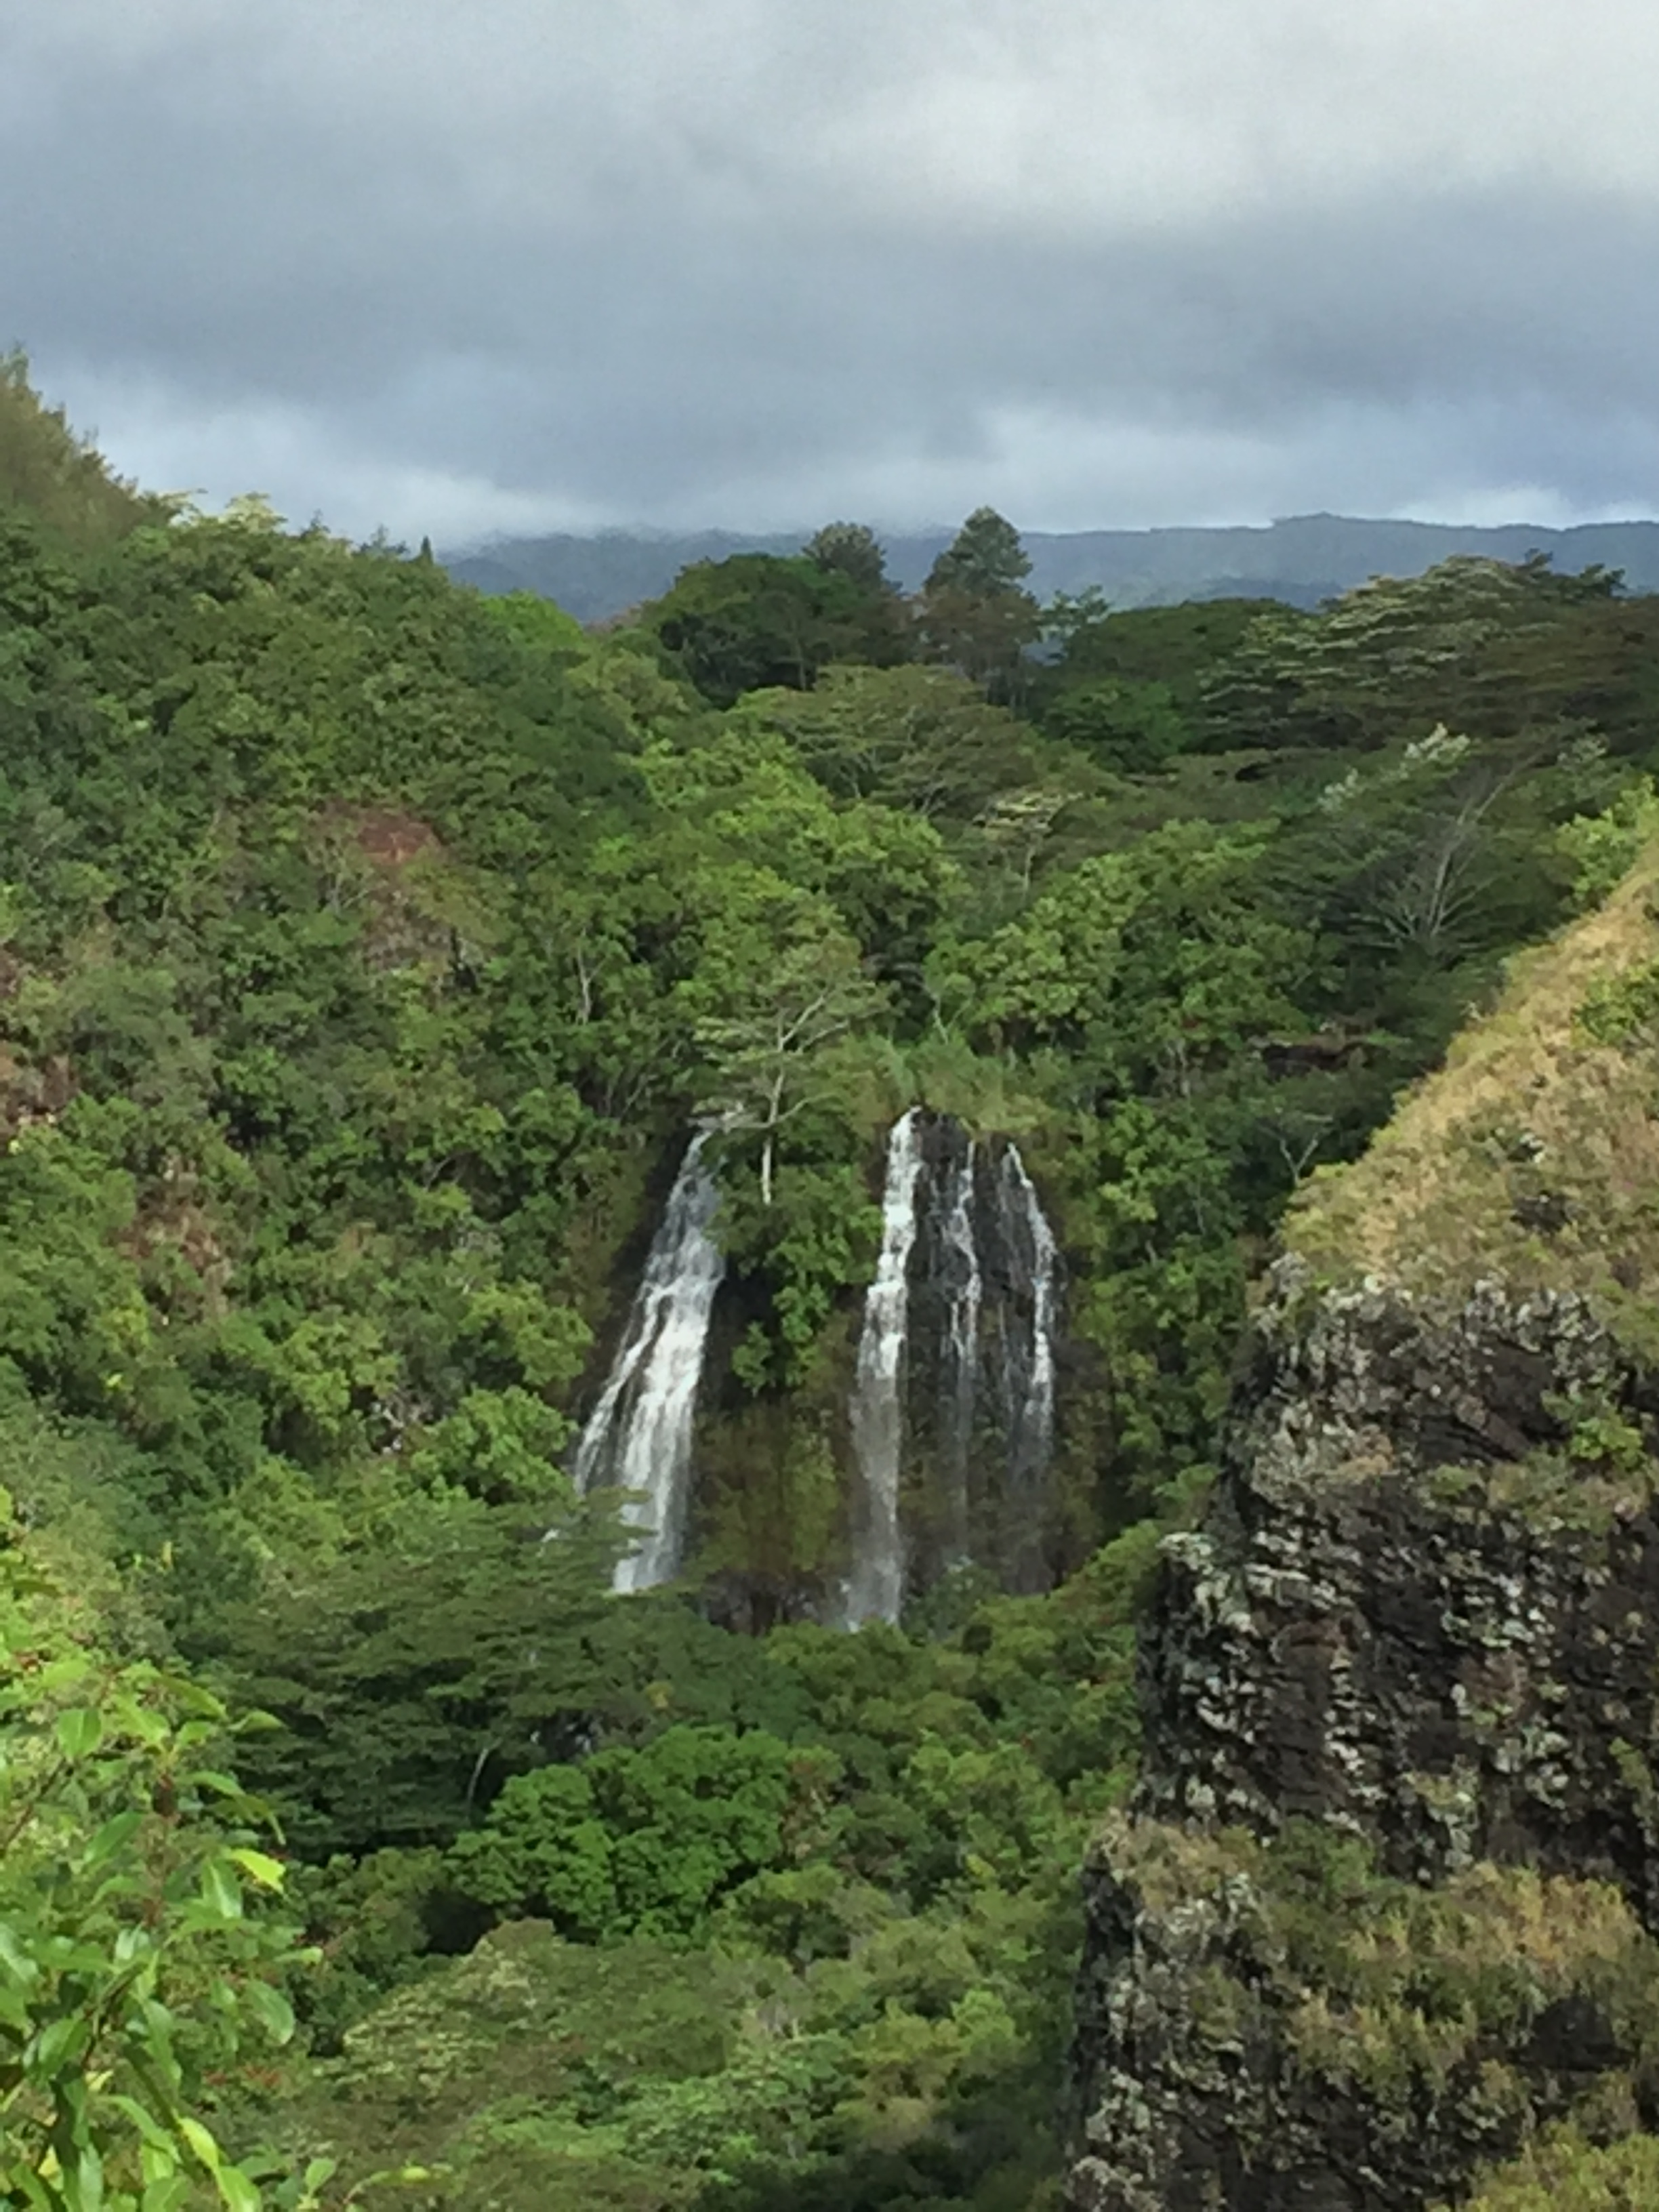 Waterfalls abound on this Island!